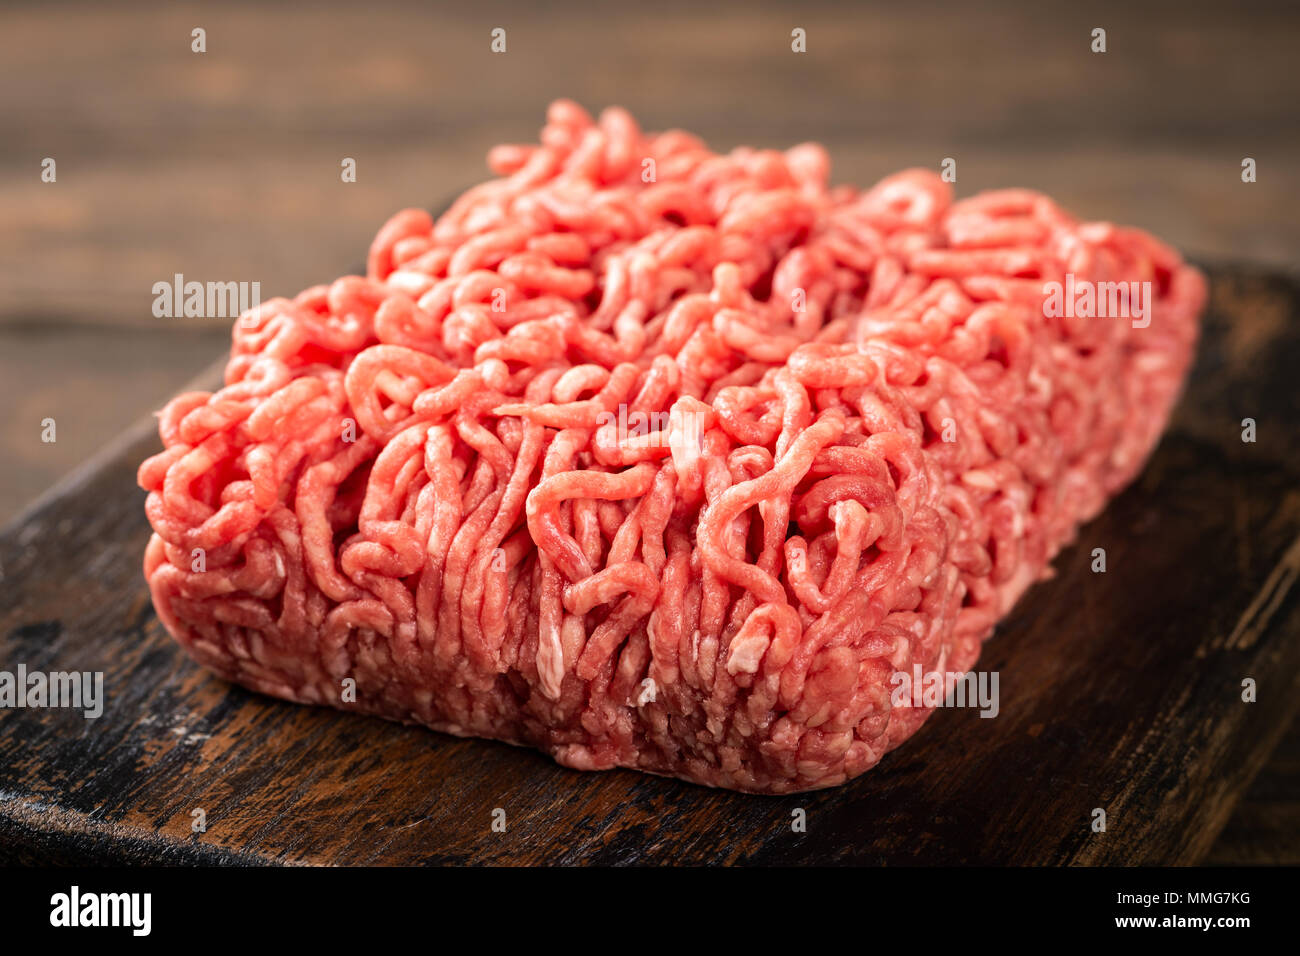 Fresh raw beef minced meat - Stock Image